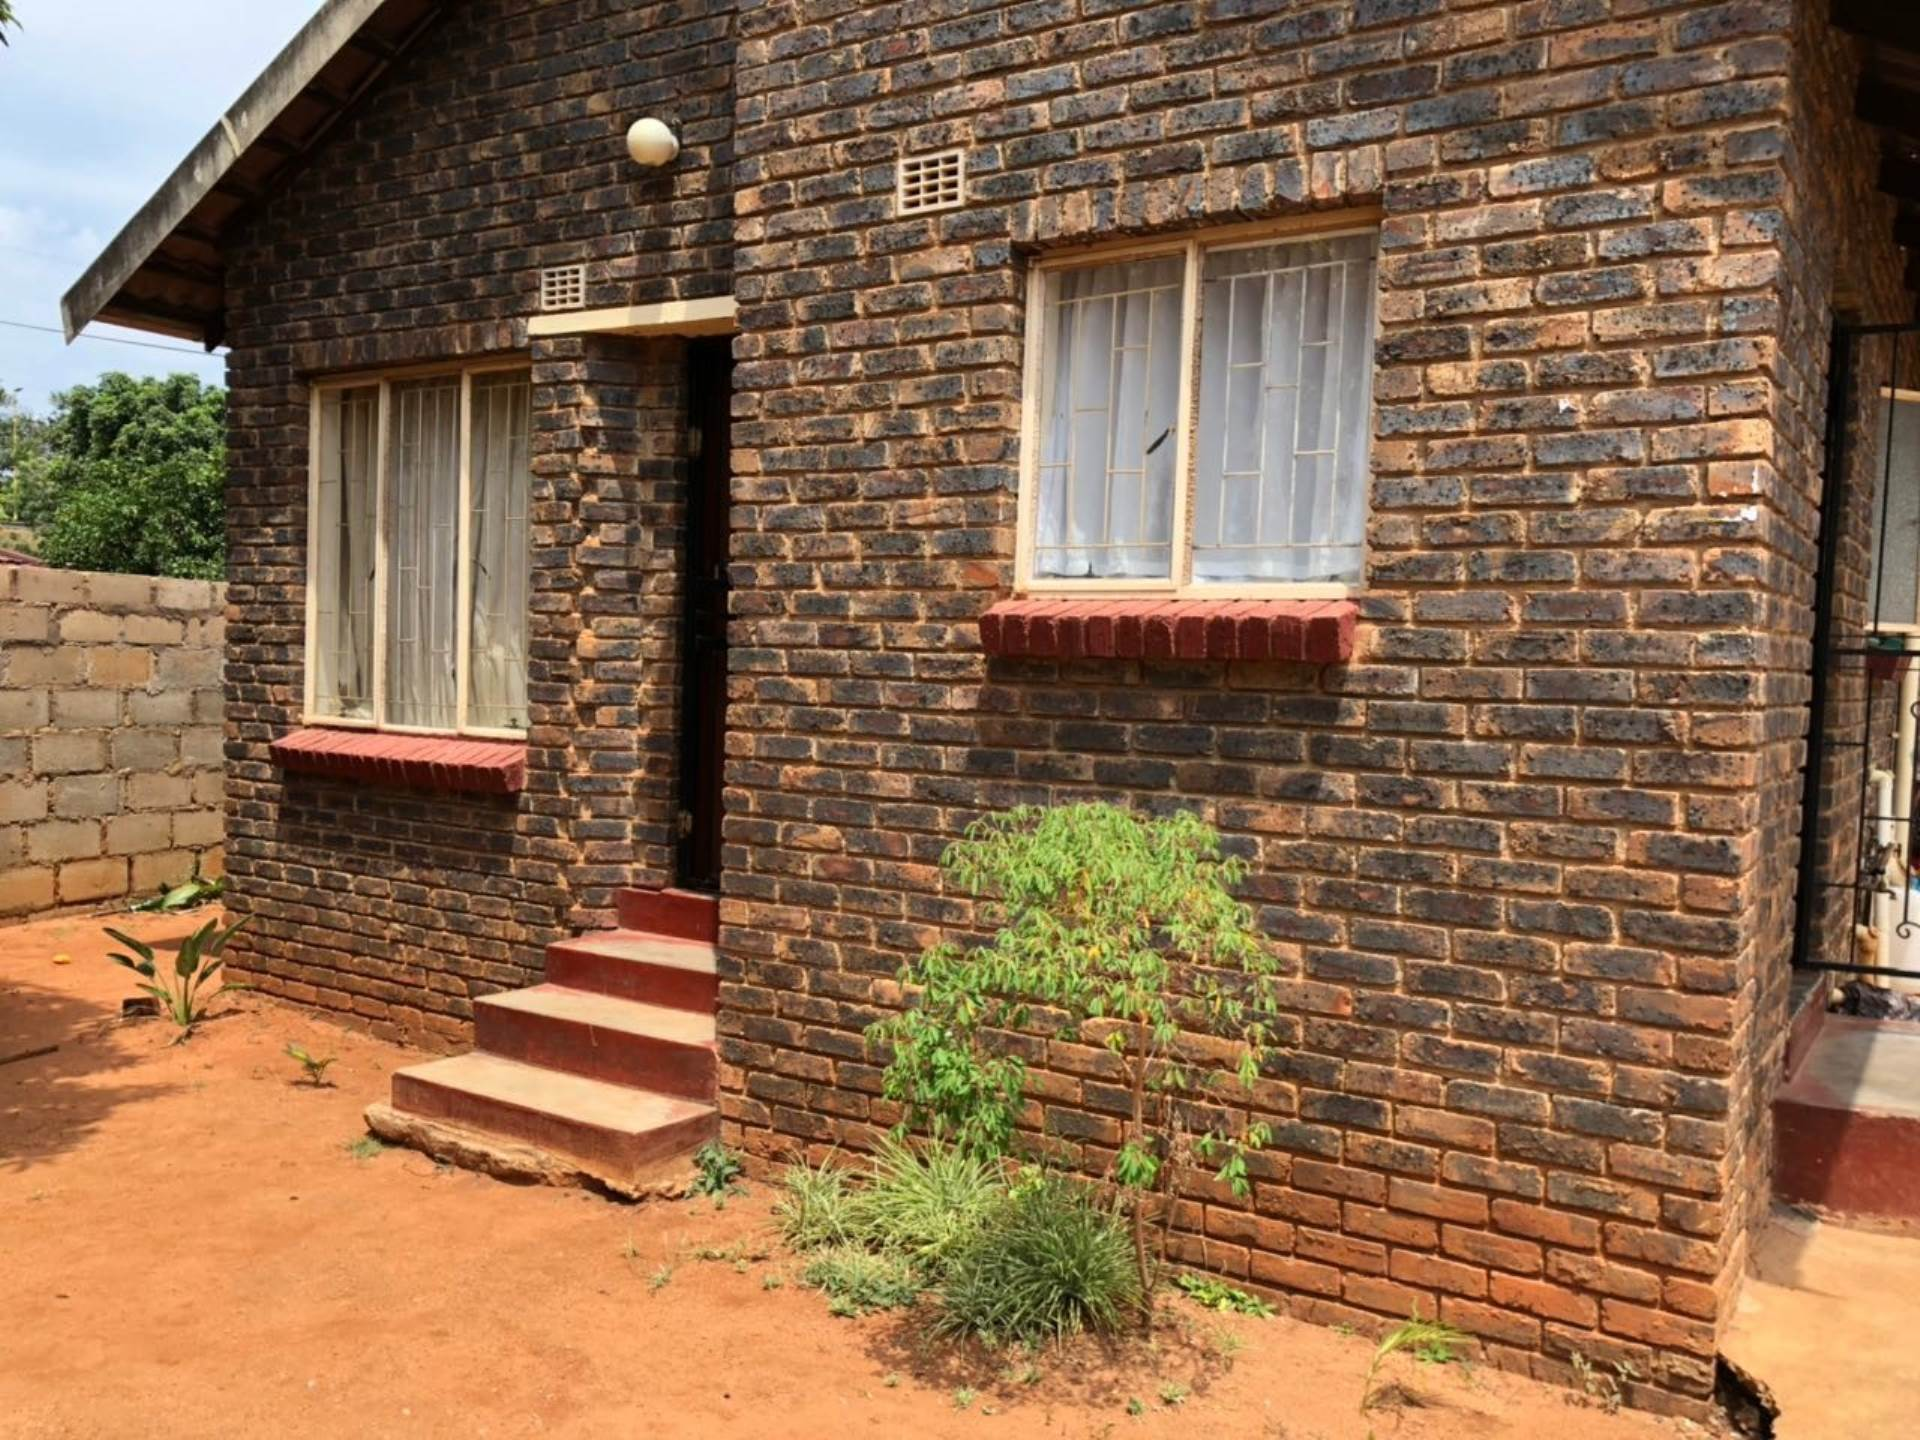 2 BedroomHouse For Sale In Barberton